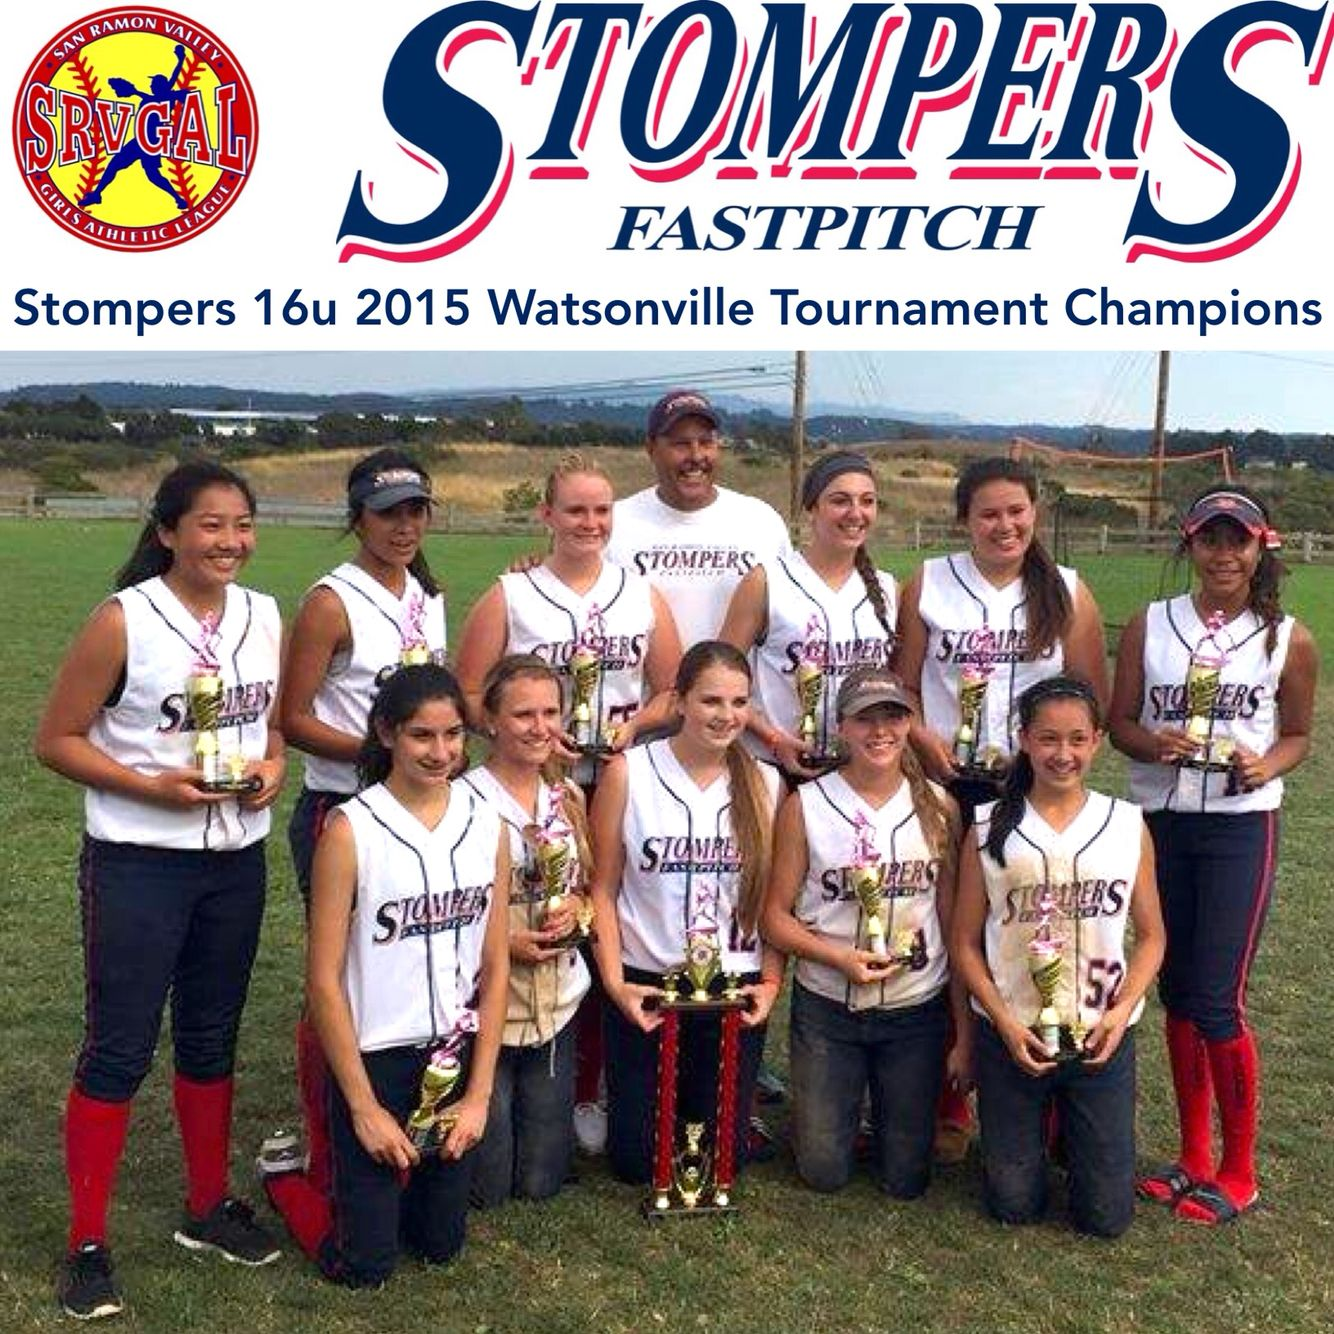 Stompers 16u 2015 Watsonville Tournament Champions With Images Fastpitch Champion Tournaments